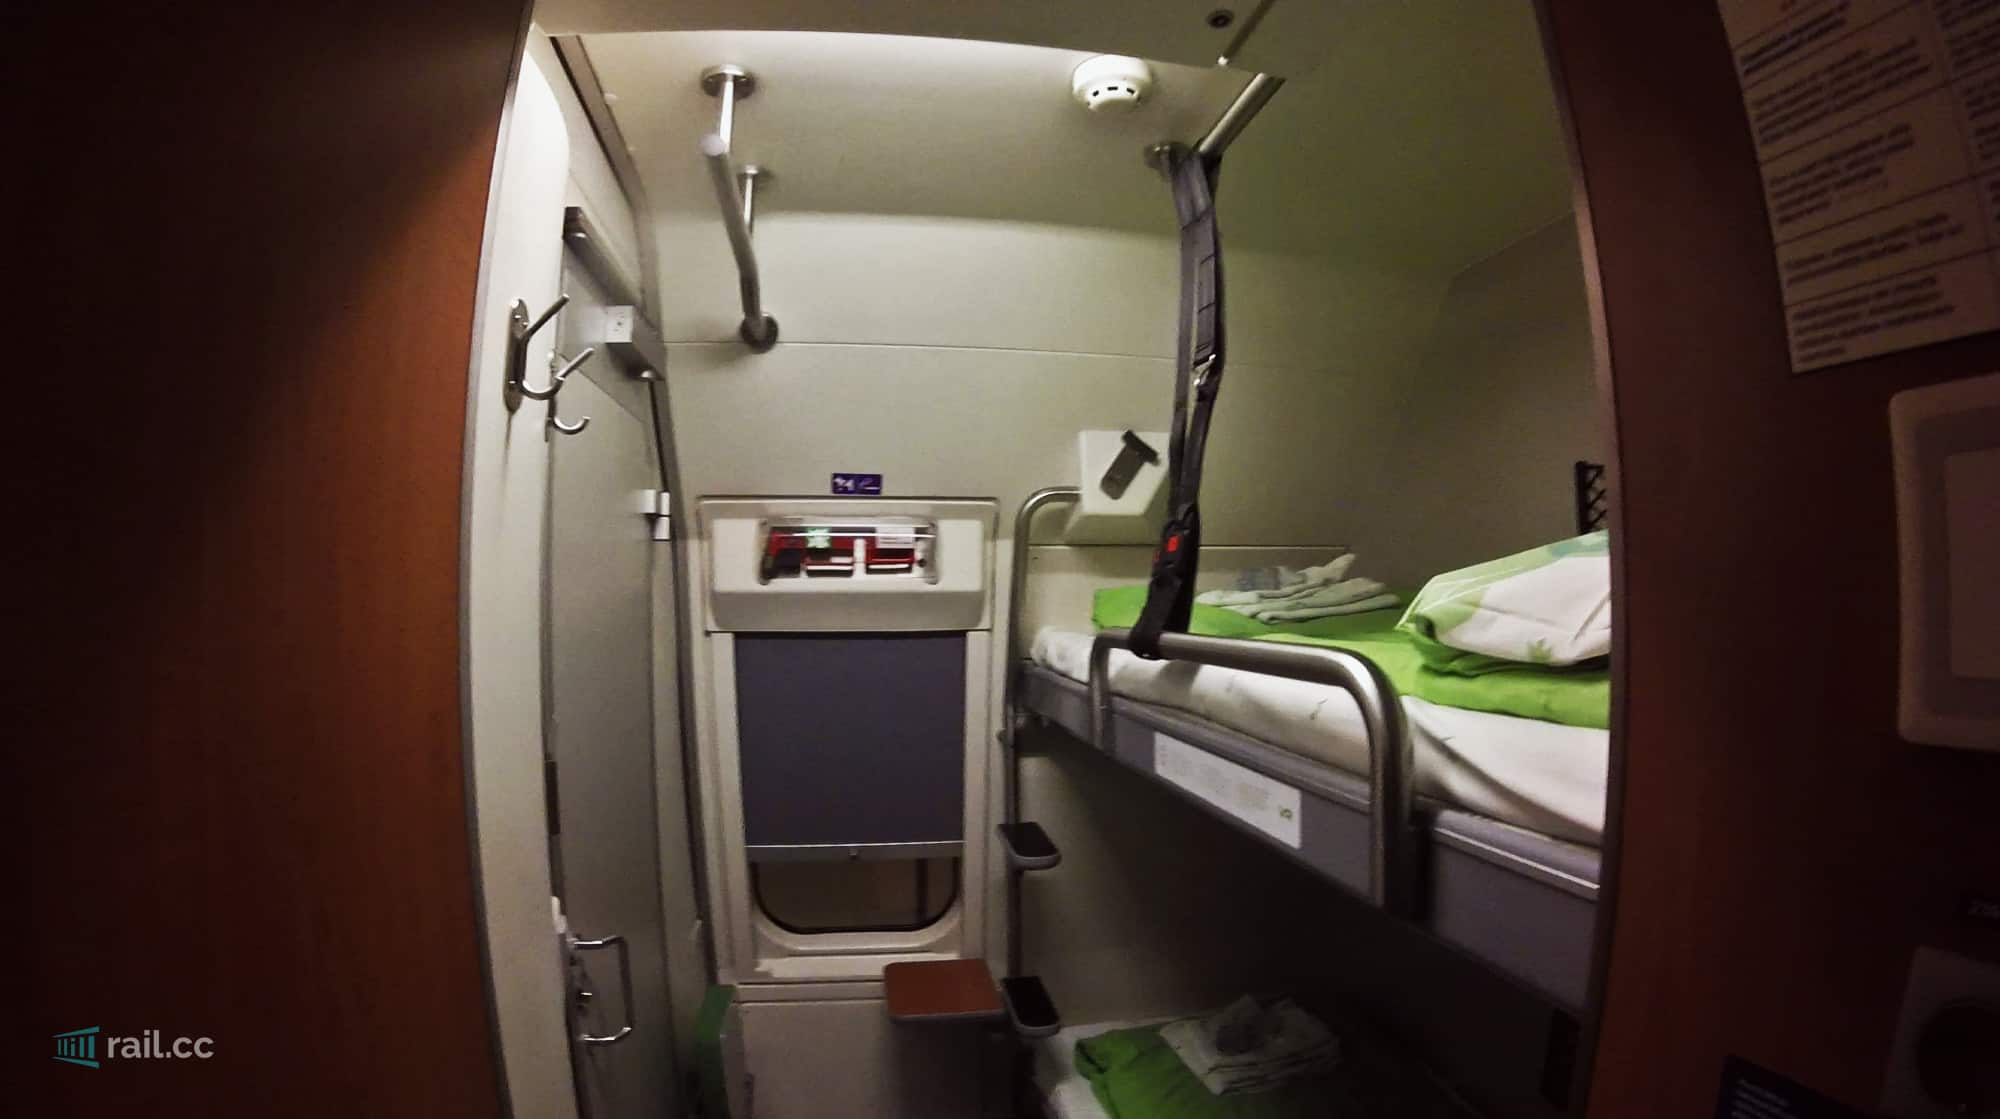 VR night train sleeper compartment